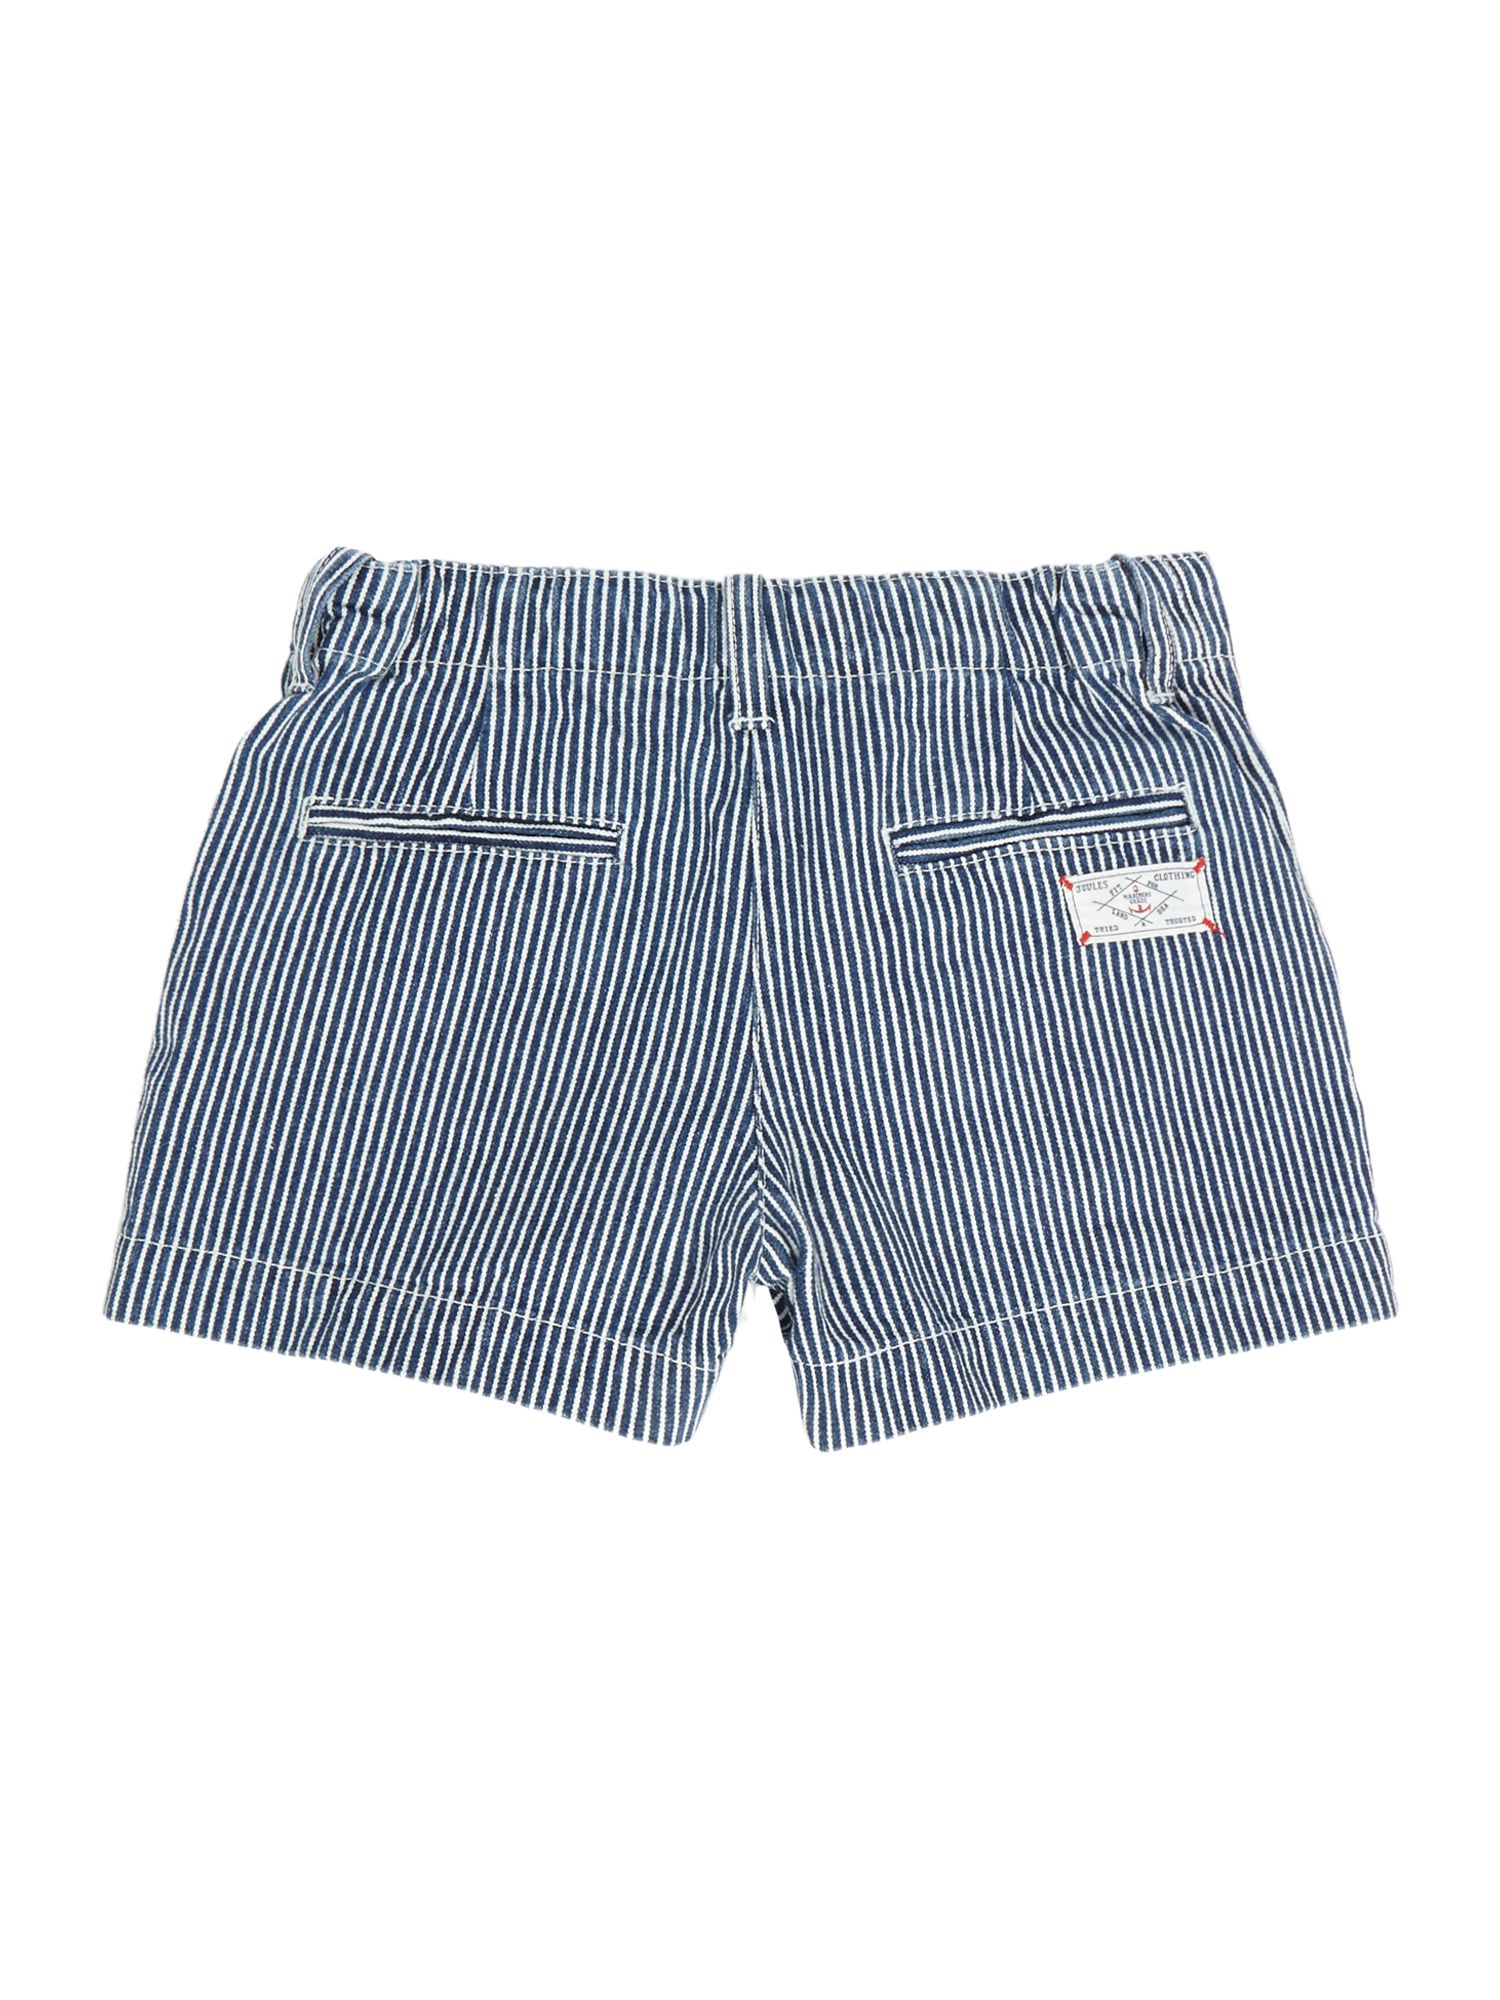 Girls striped short with button detail